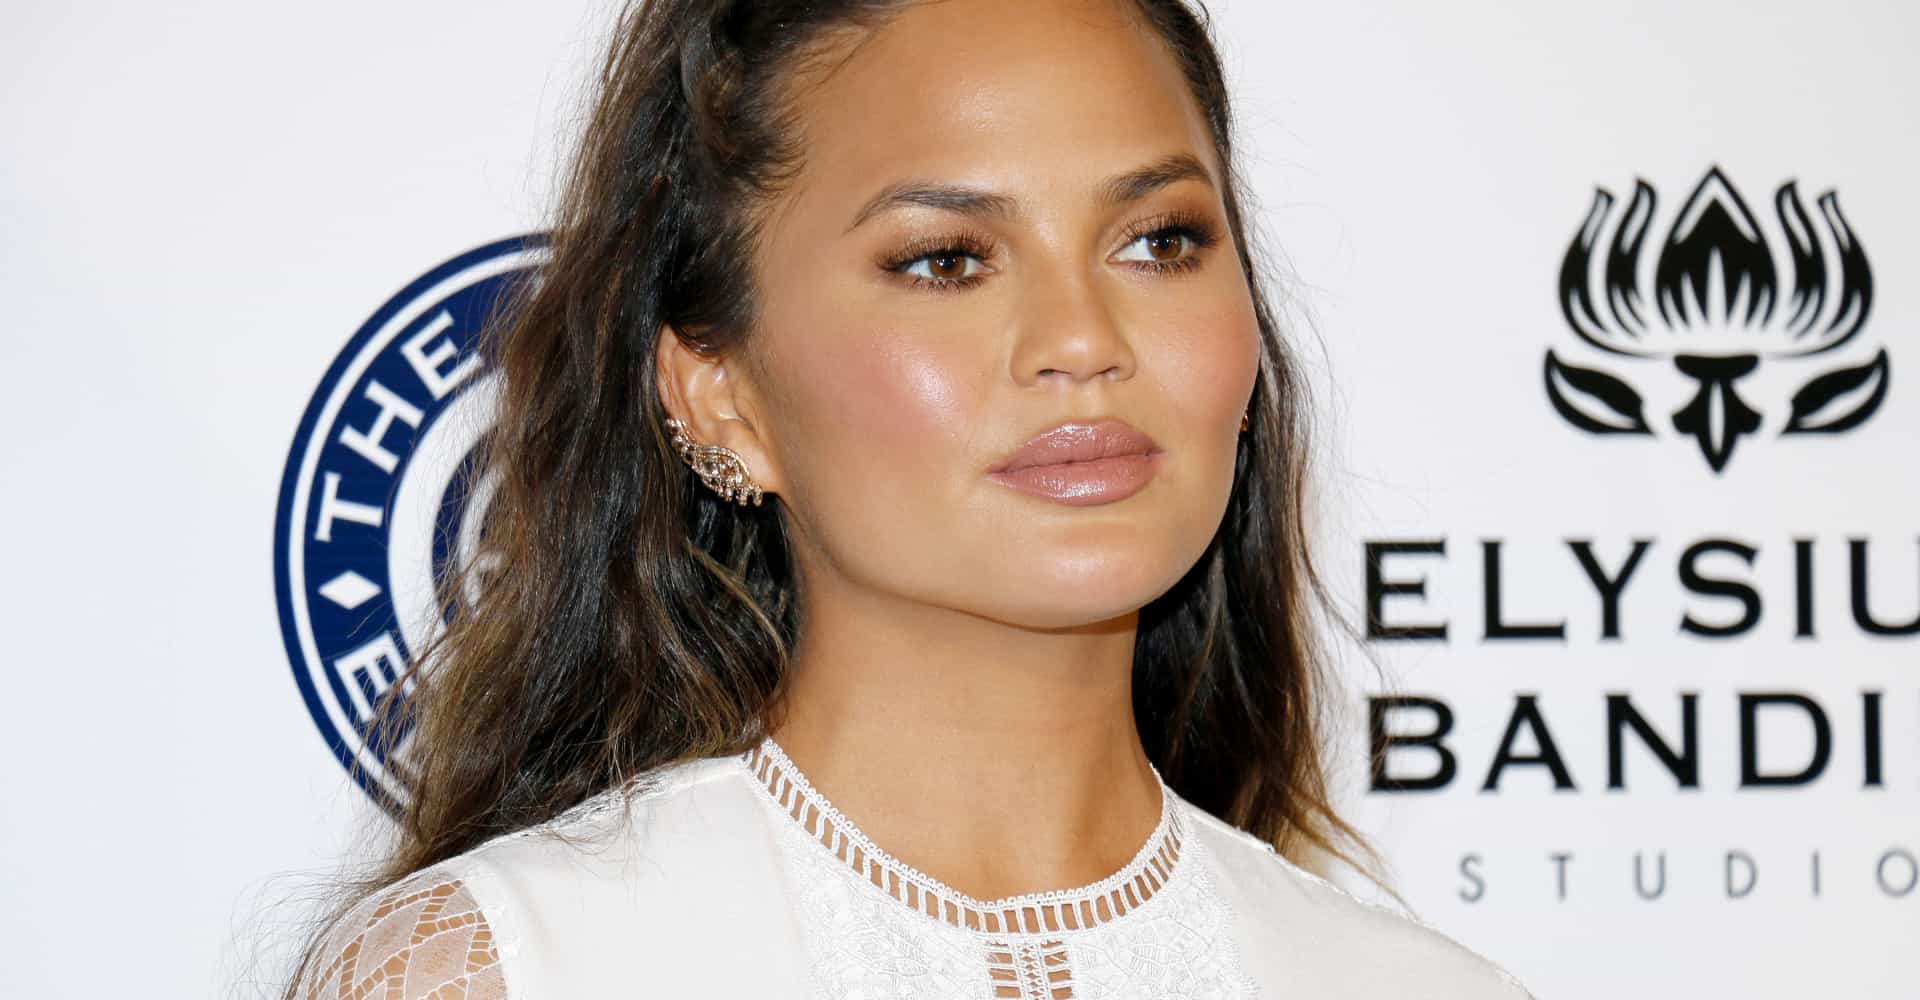 Stop what you're doing and follow Chrissy Teigen on Twitter